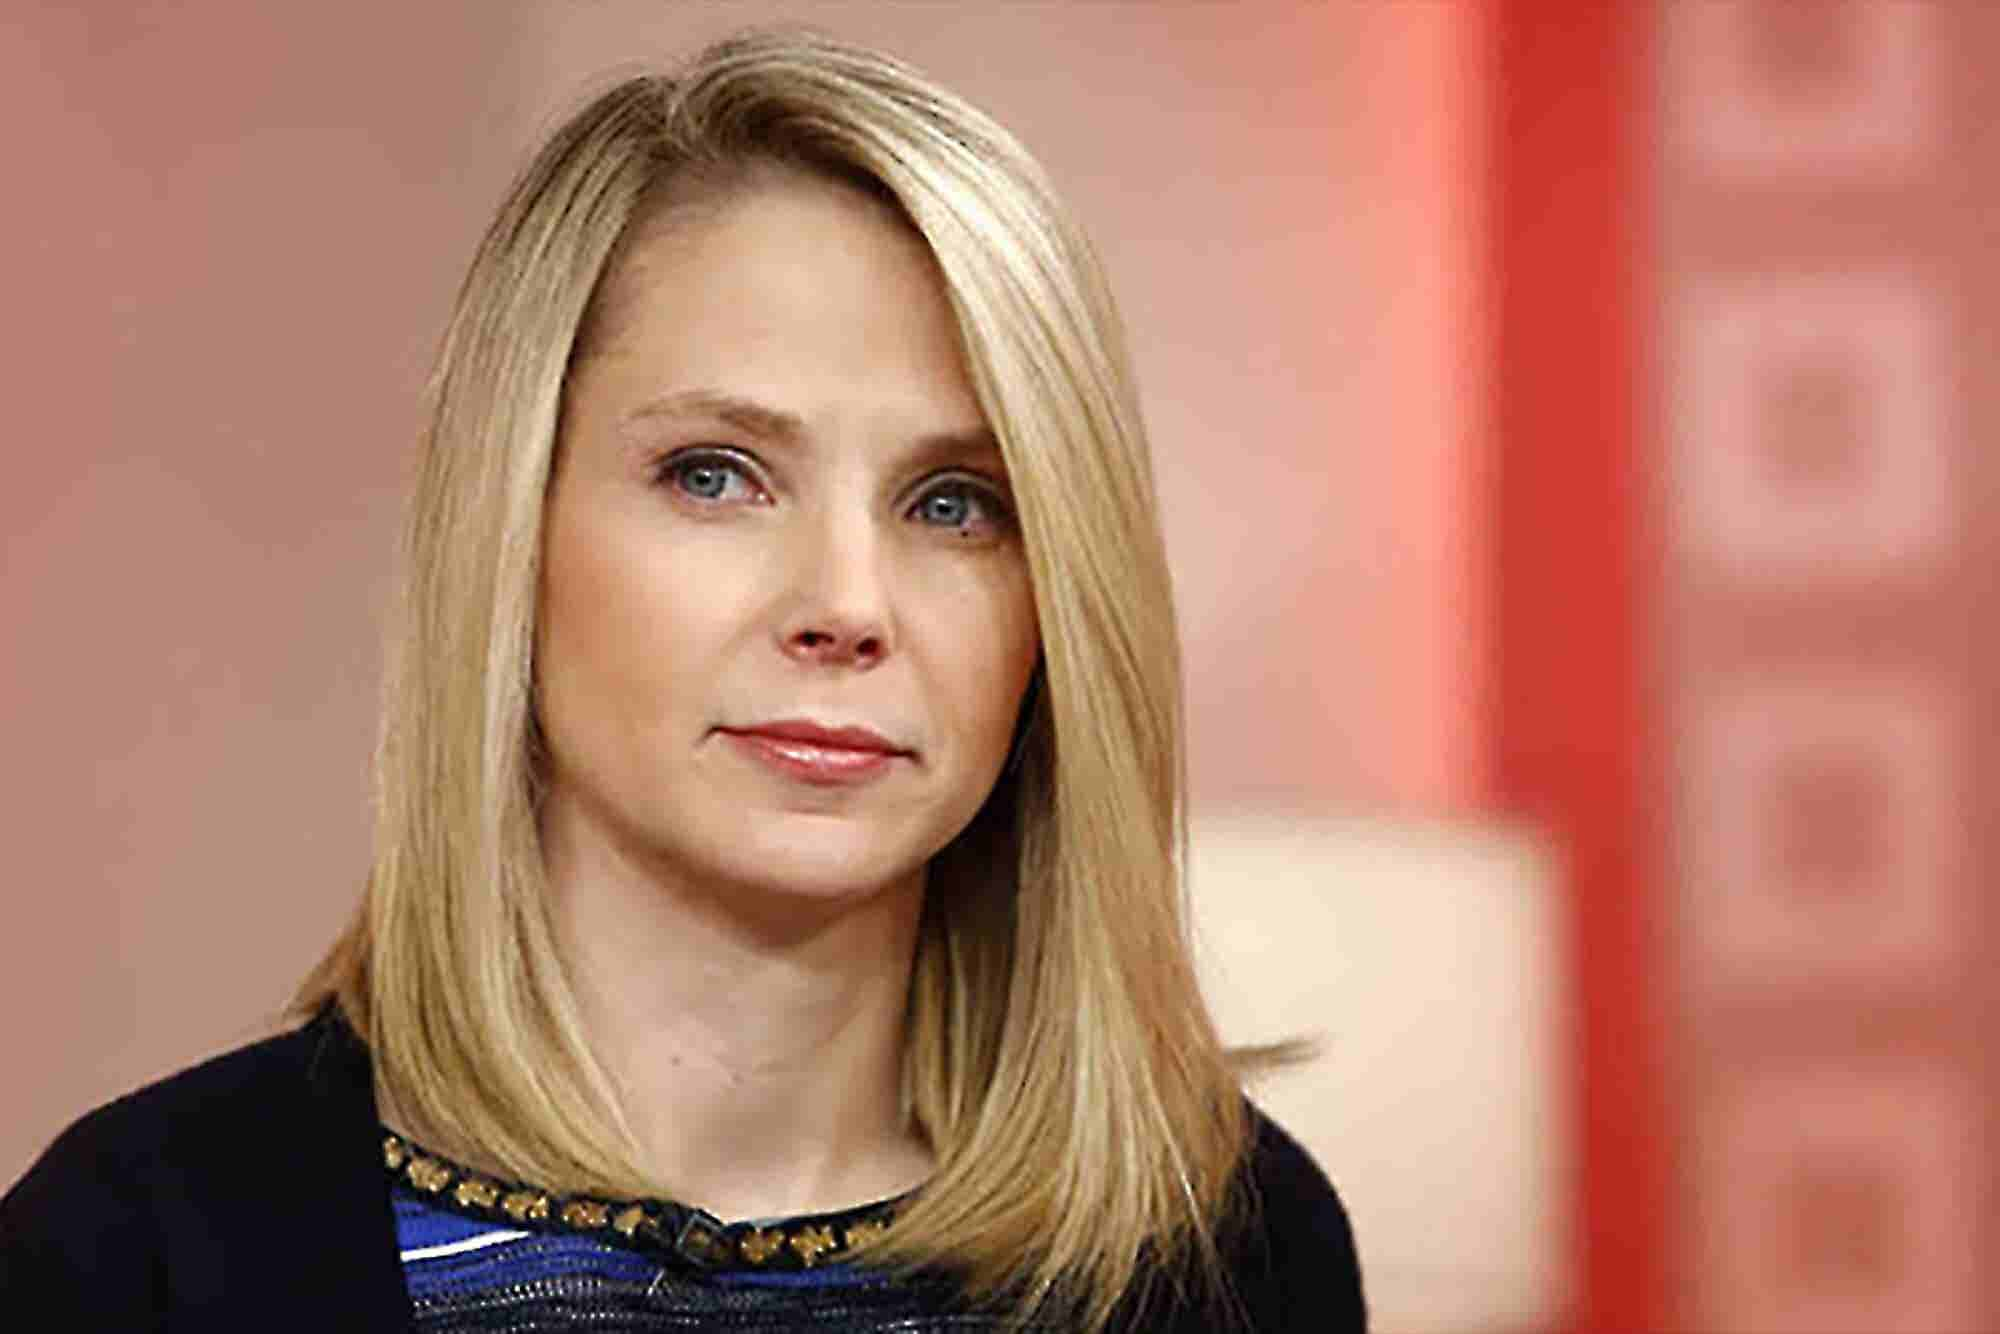 Marissa Mayer's Smartest and Dumbest Moves at Yahoo